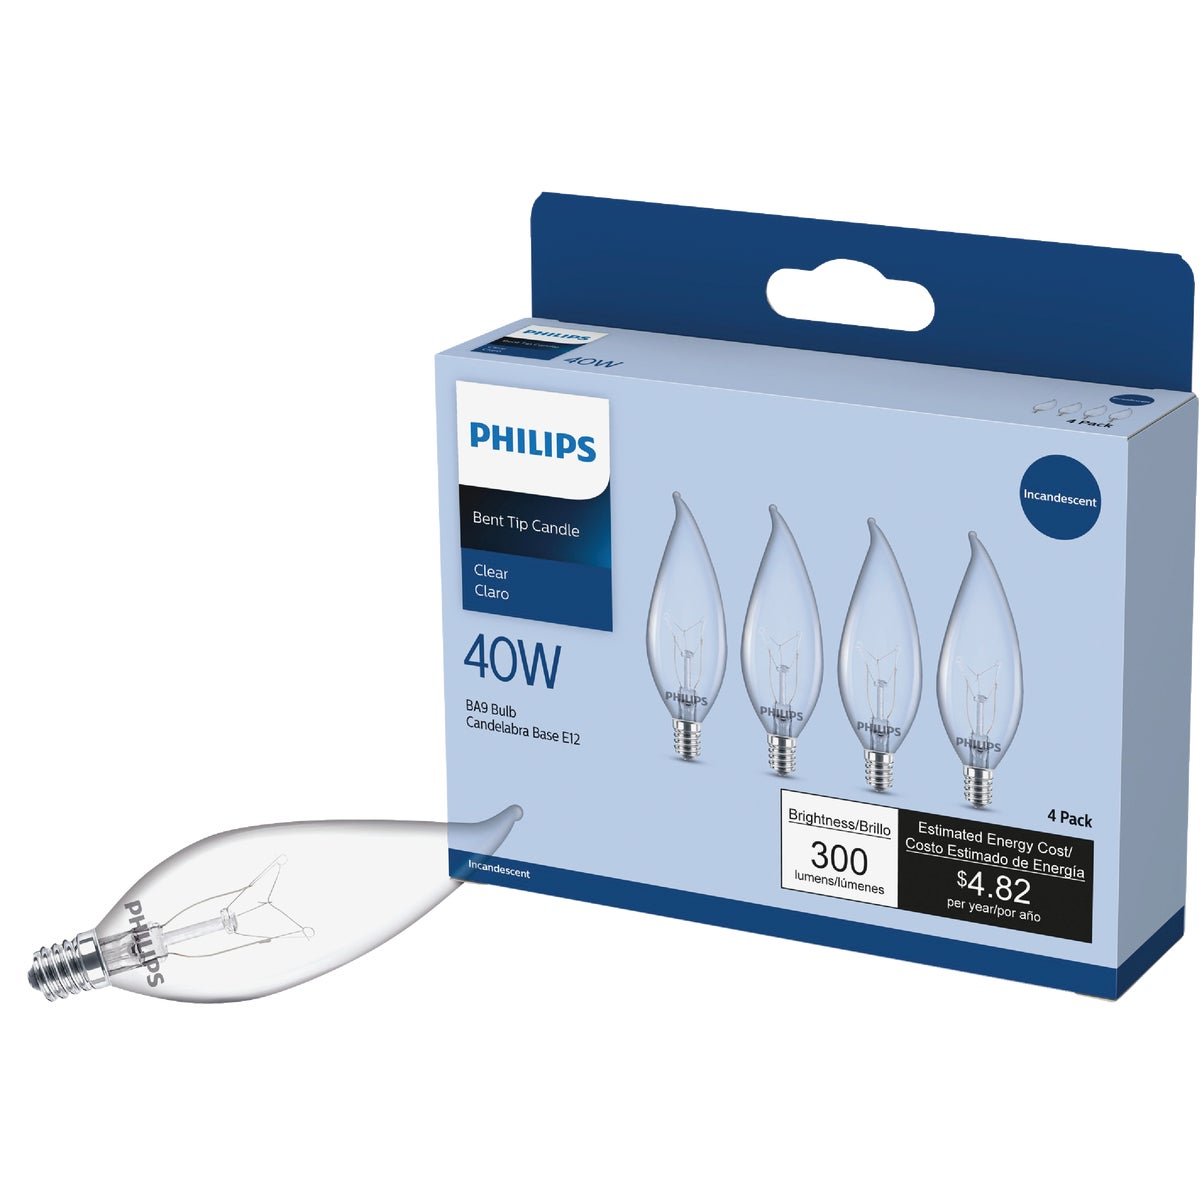 40W BENT TIP 6PK BULB - 75224 by G E Lighting